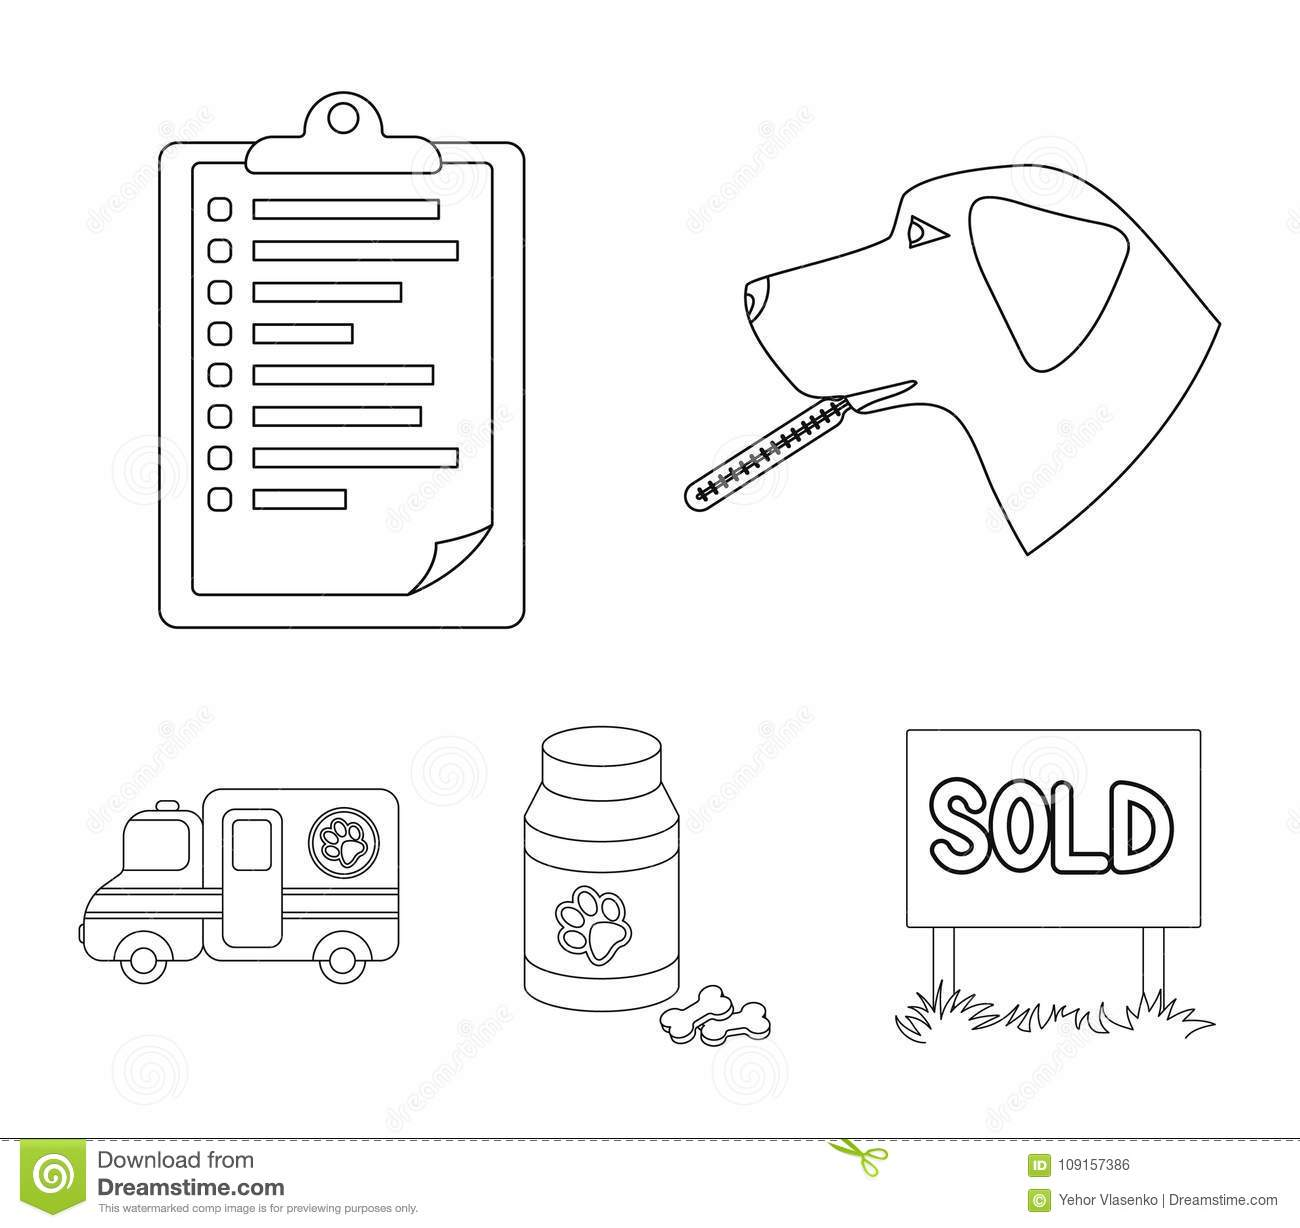 hight resolution of hospital veterinarian dog thermometer vet clinic set collection icons in outline style